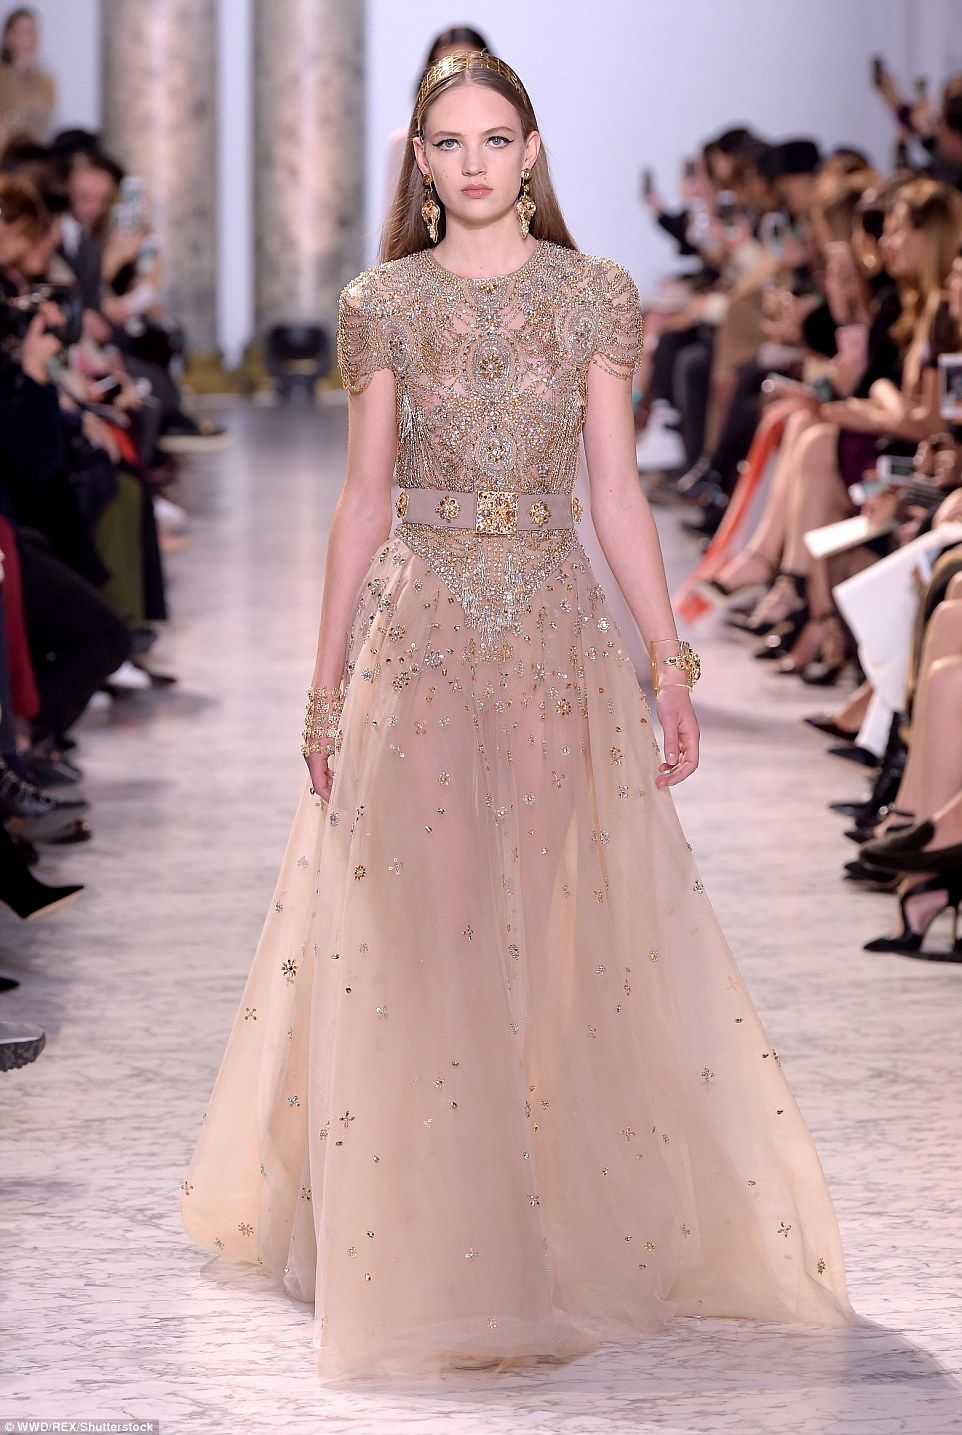 elie saab wows with fairytale dresses at paris haute